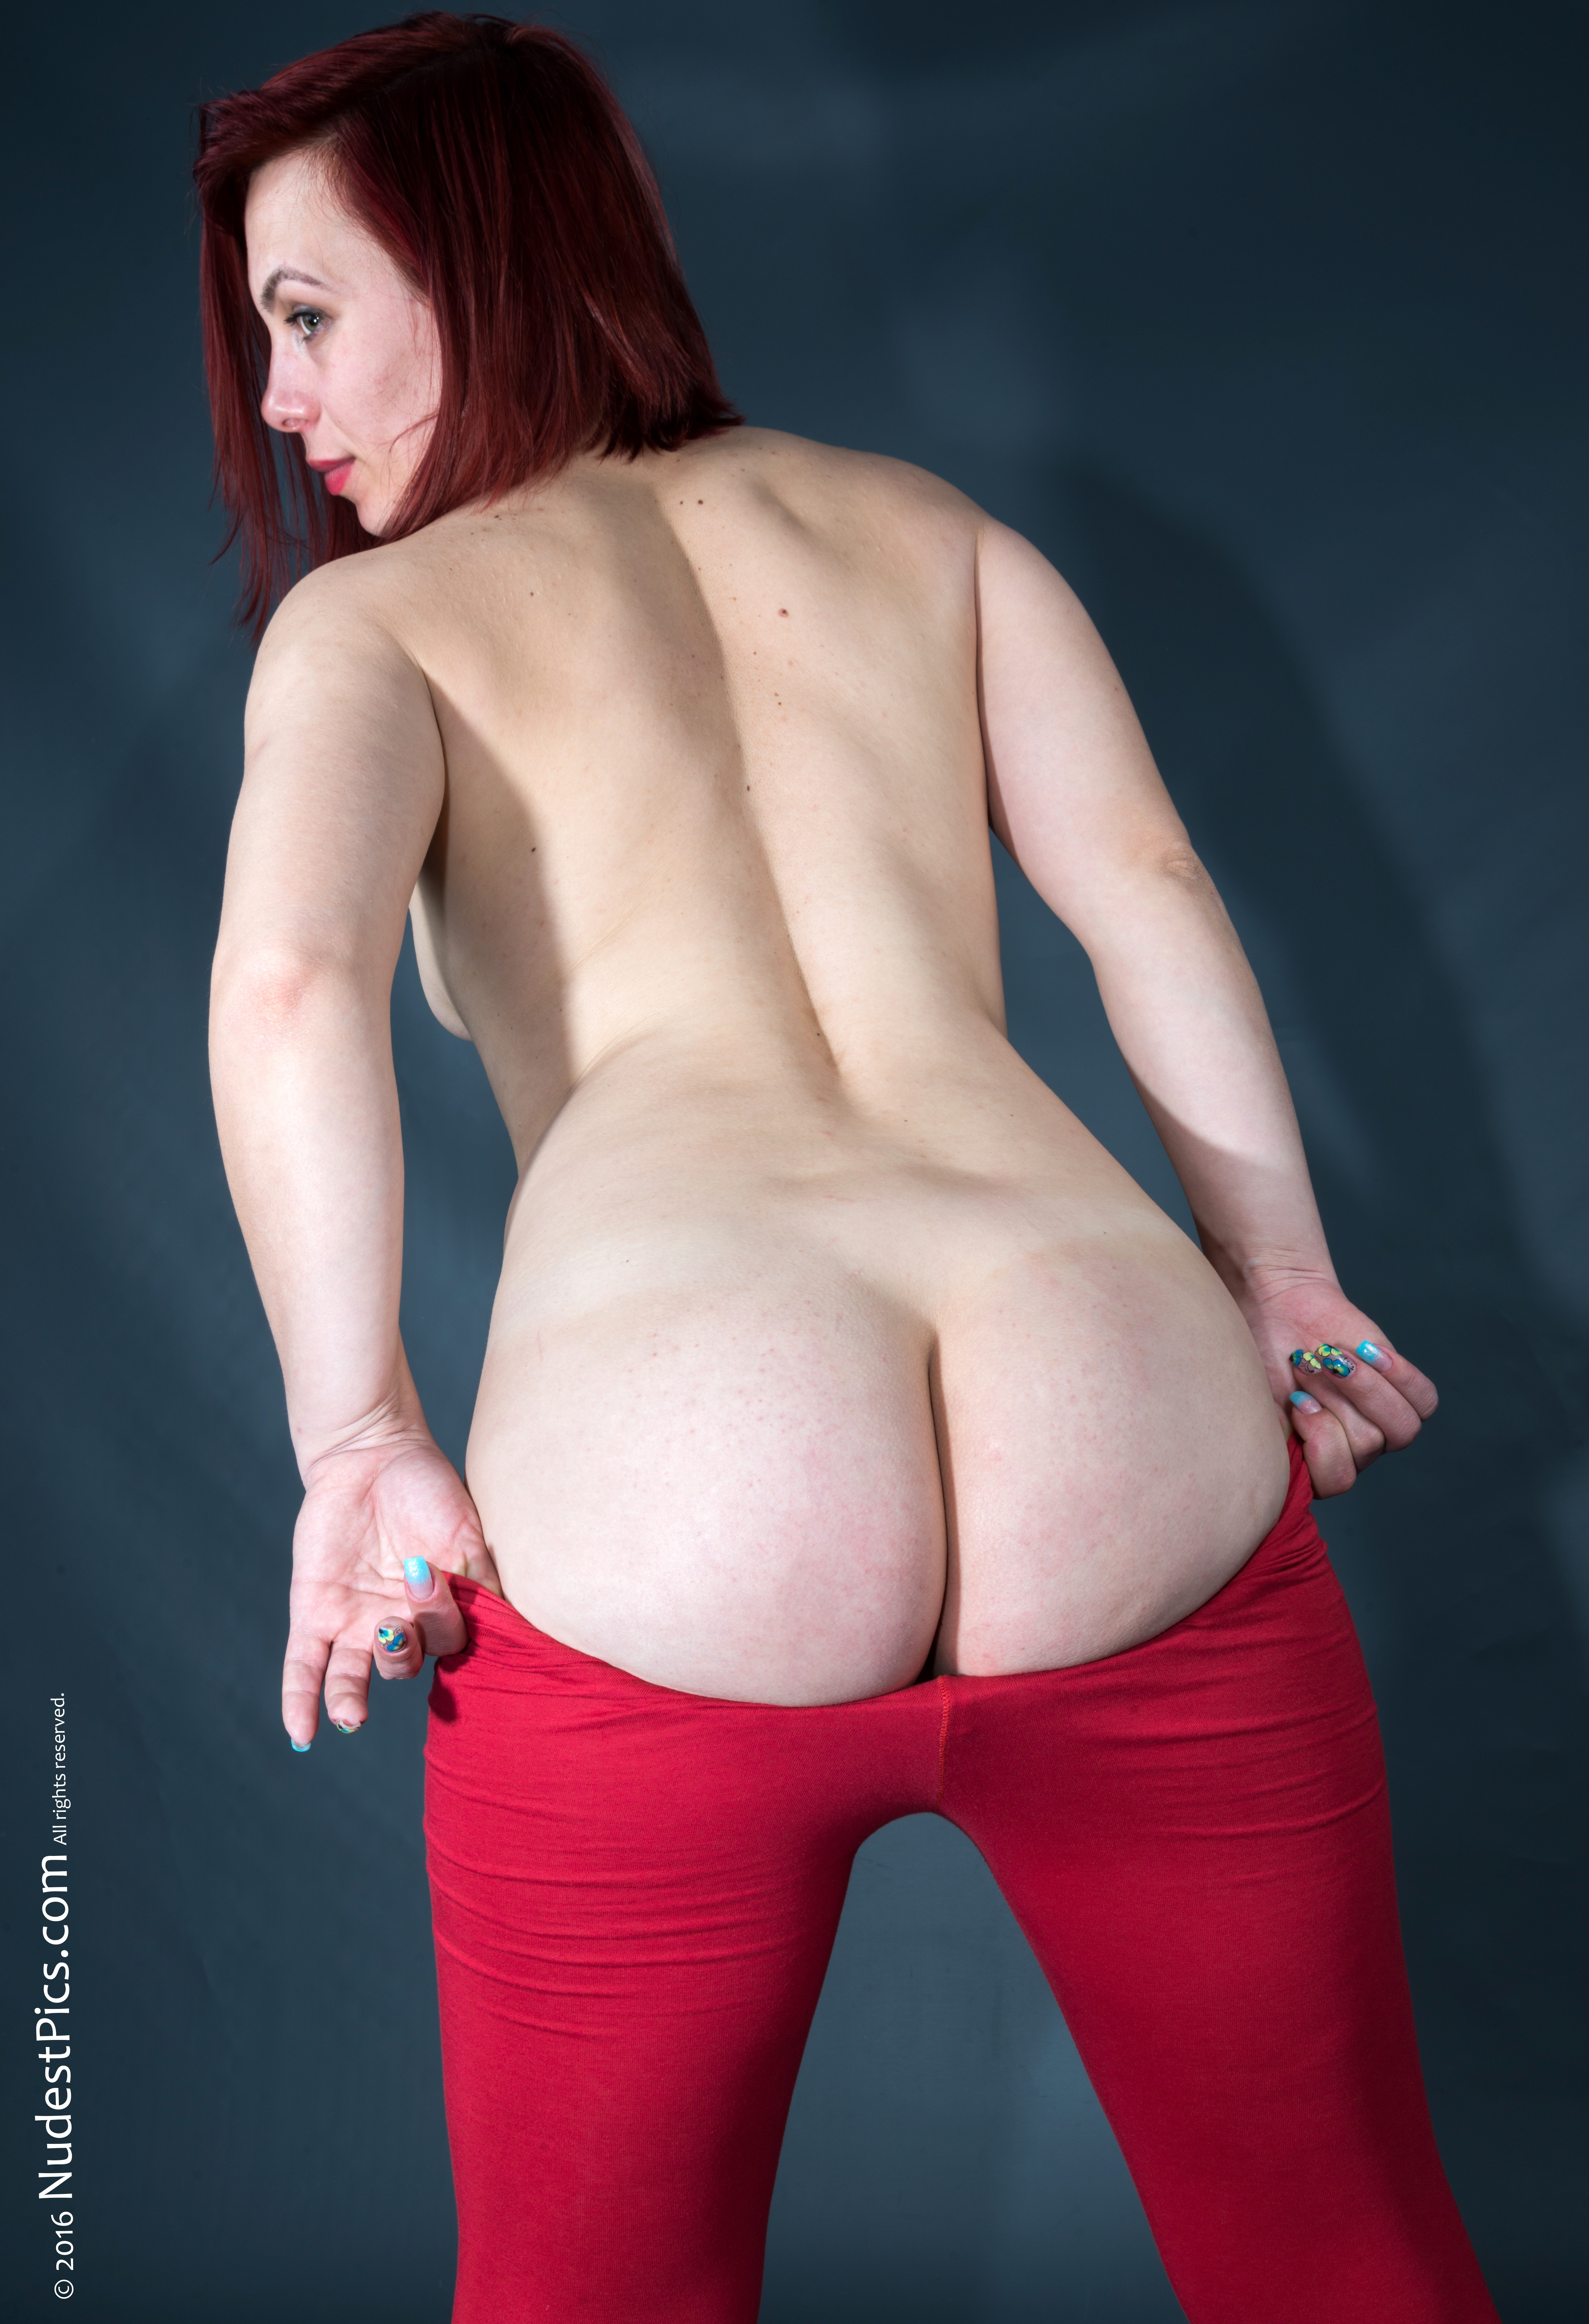 White Bubble Butt Girl Undressing Red Tights